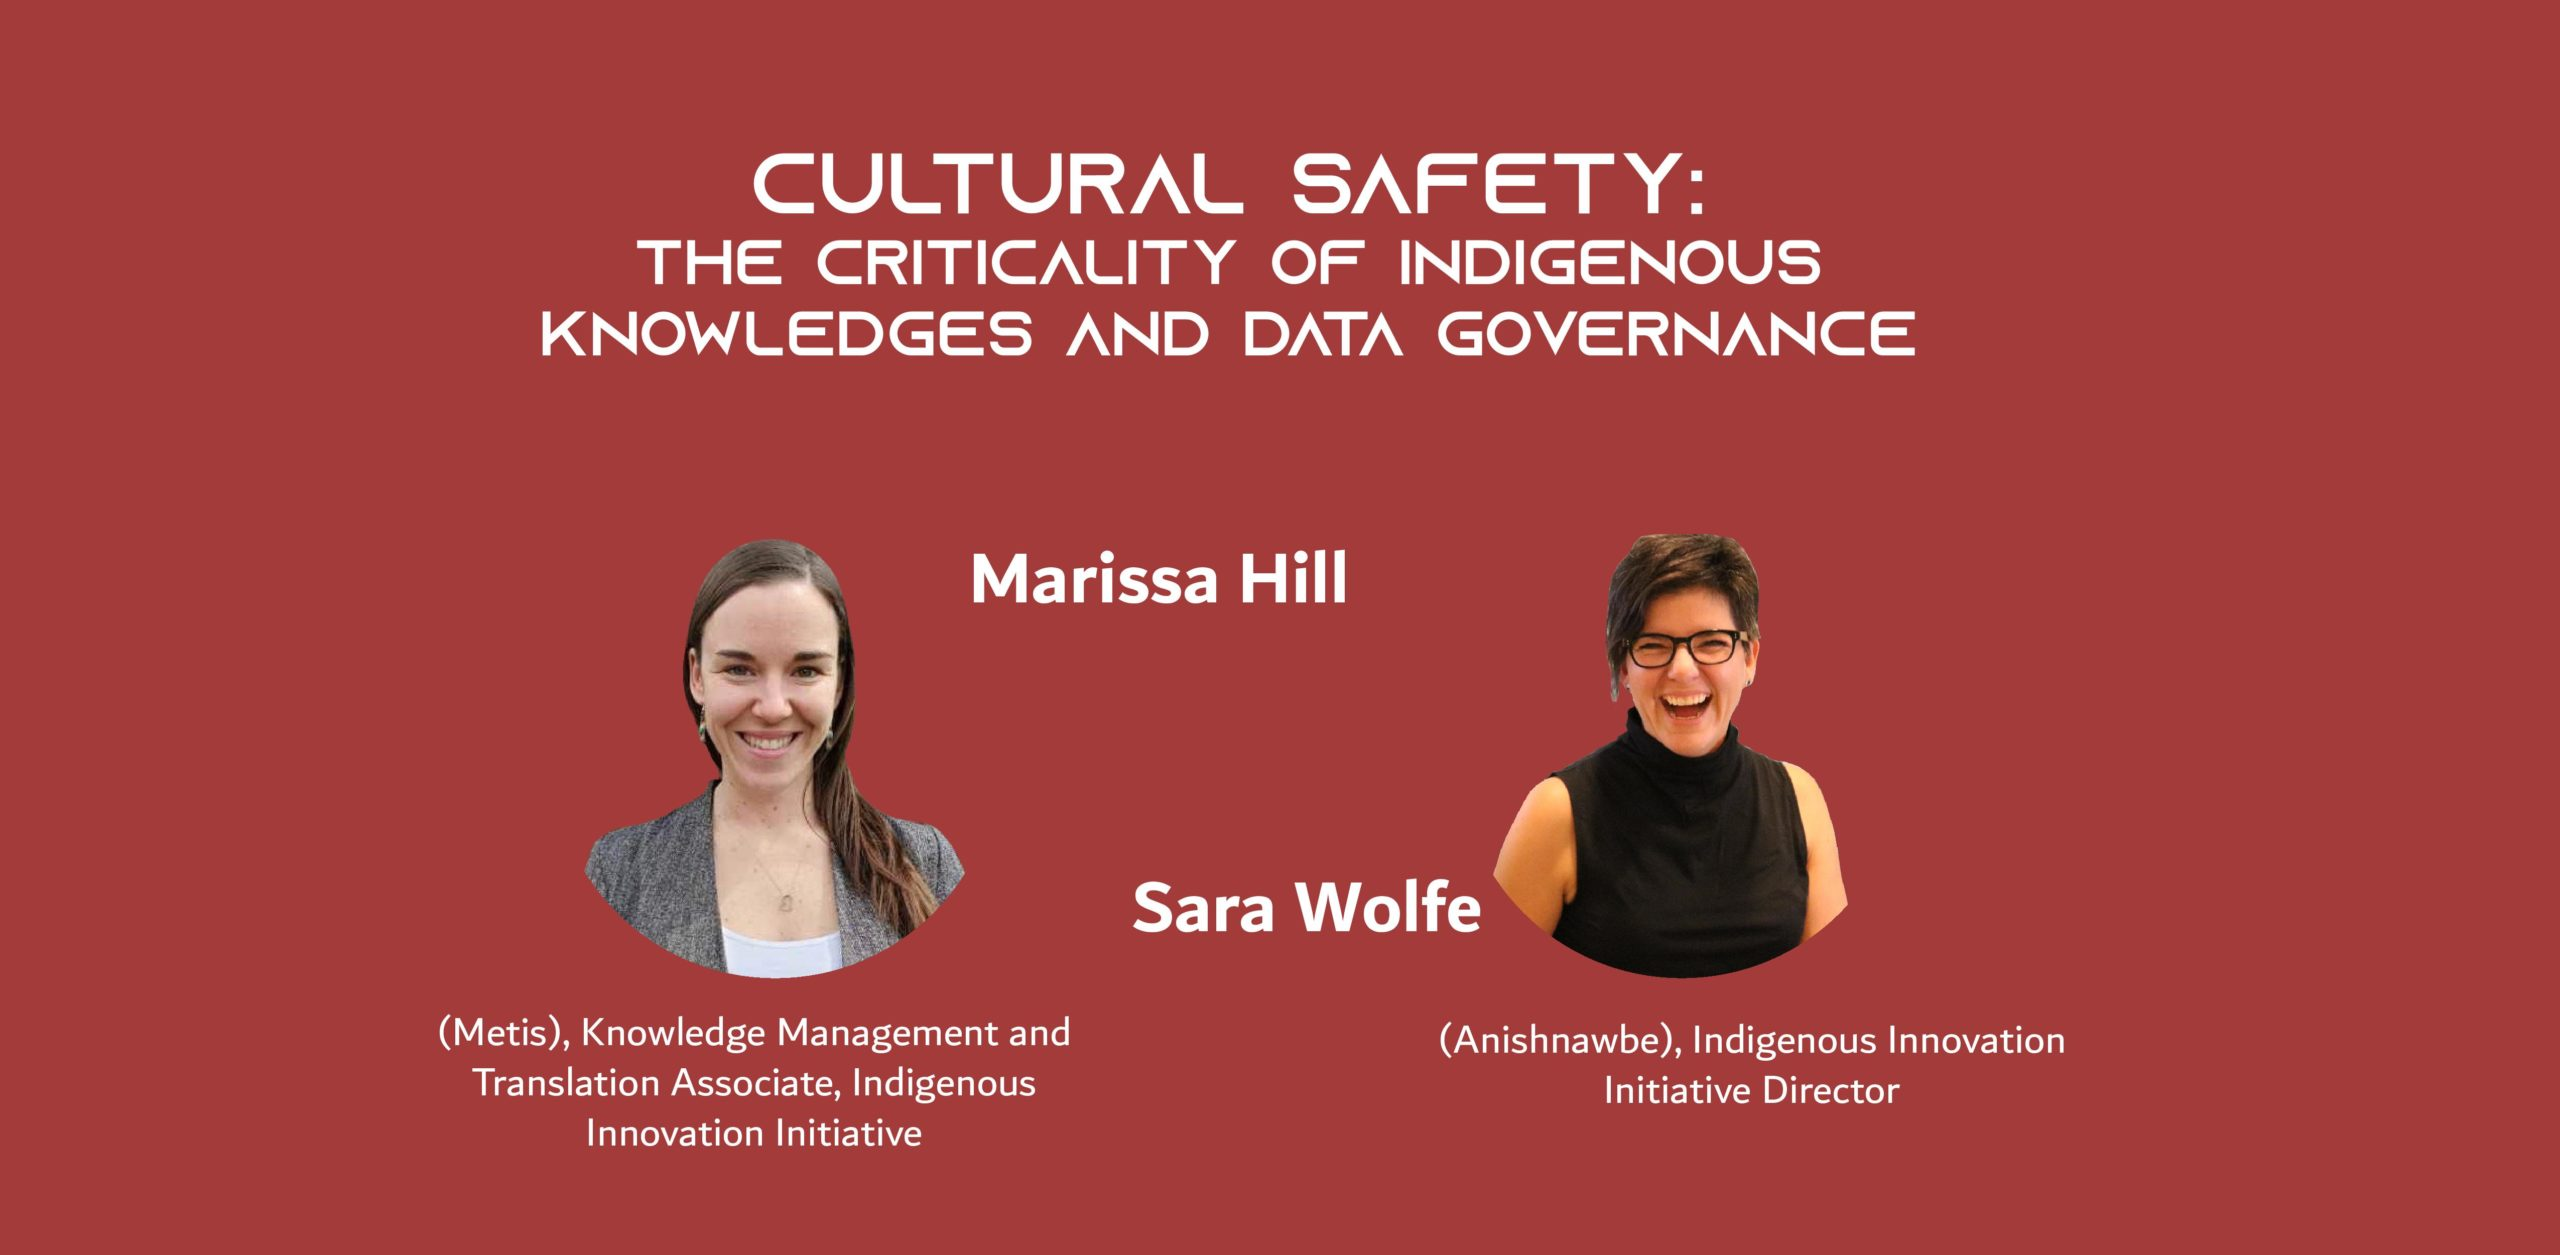 Picture of two women on a red background with the text: Cultural safety: the criticality of Indigenous Knowledges and data governance By Sara Wolfe (Anishnawbe), Indigenous Innovation Initiative Director, and Marissa Hill (Metis), Knowledge Management and Translation Associate, Indigenous Innovation Initiative